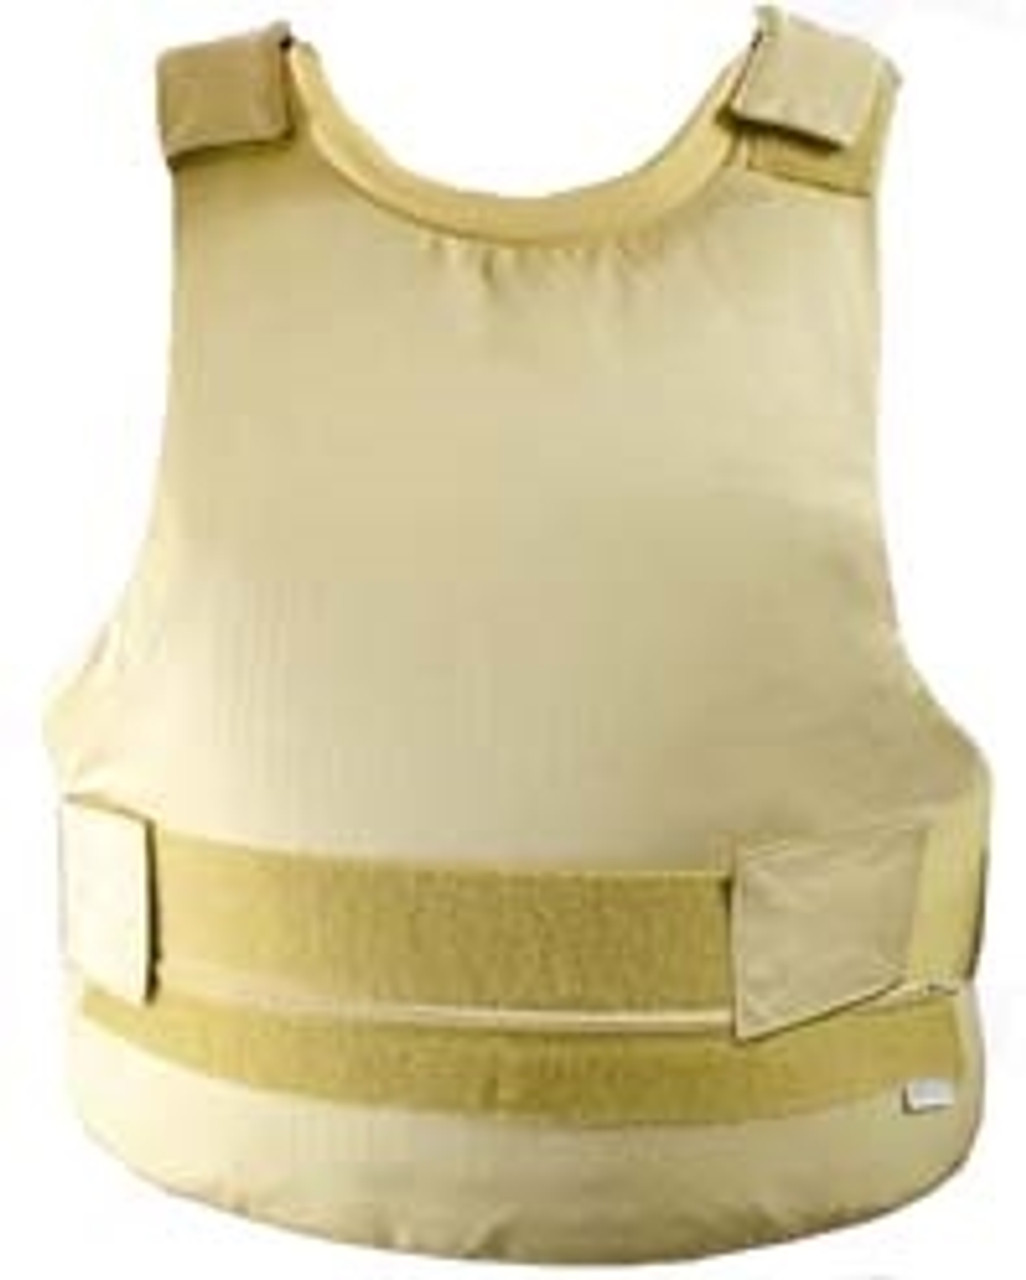 German Police Body Armor With Carry Bag  from Hessen Antique